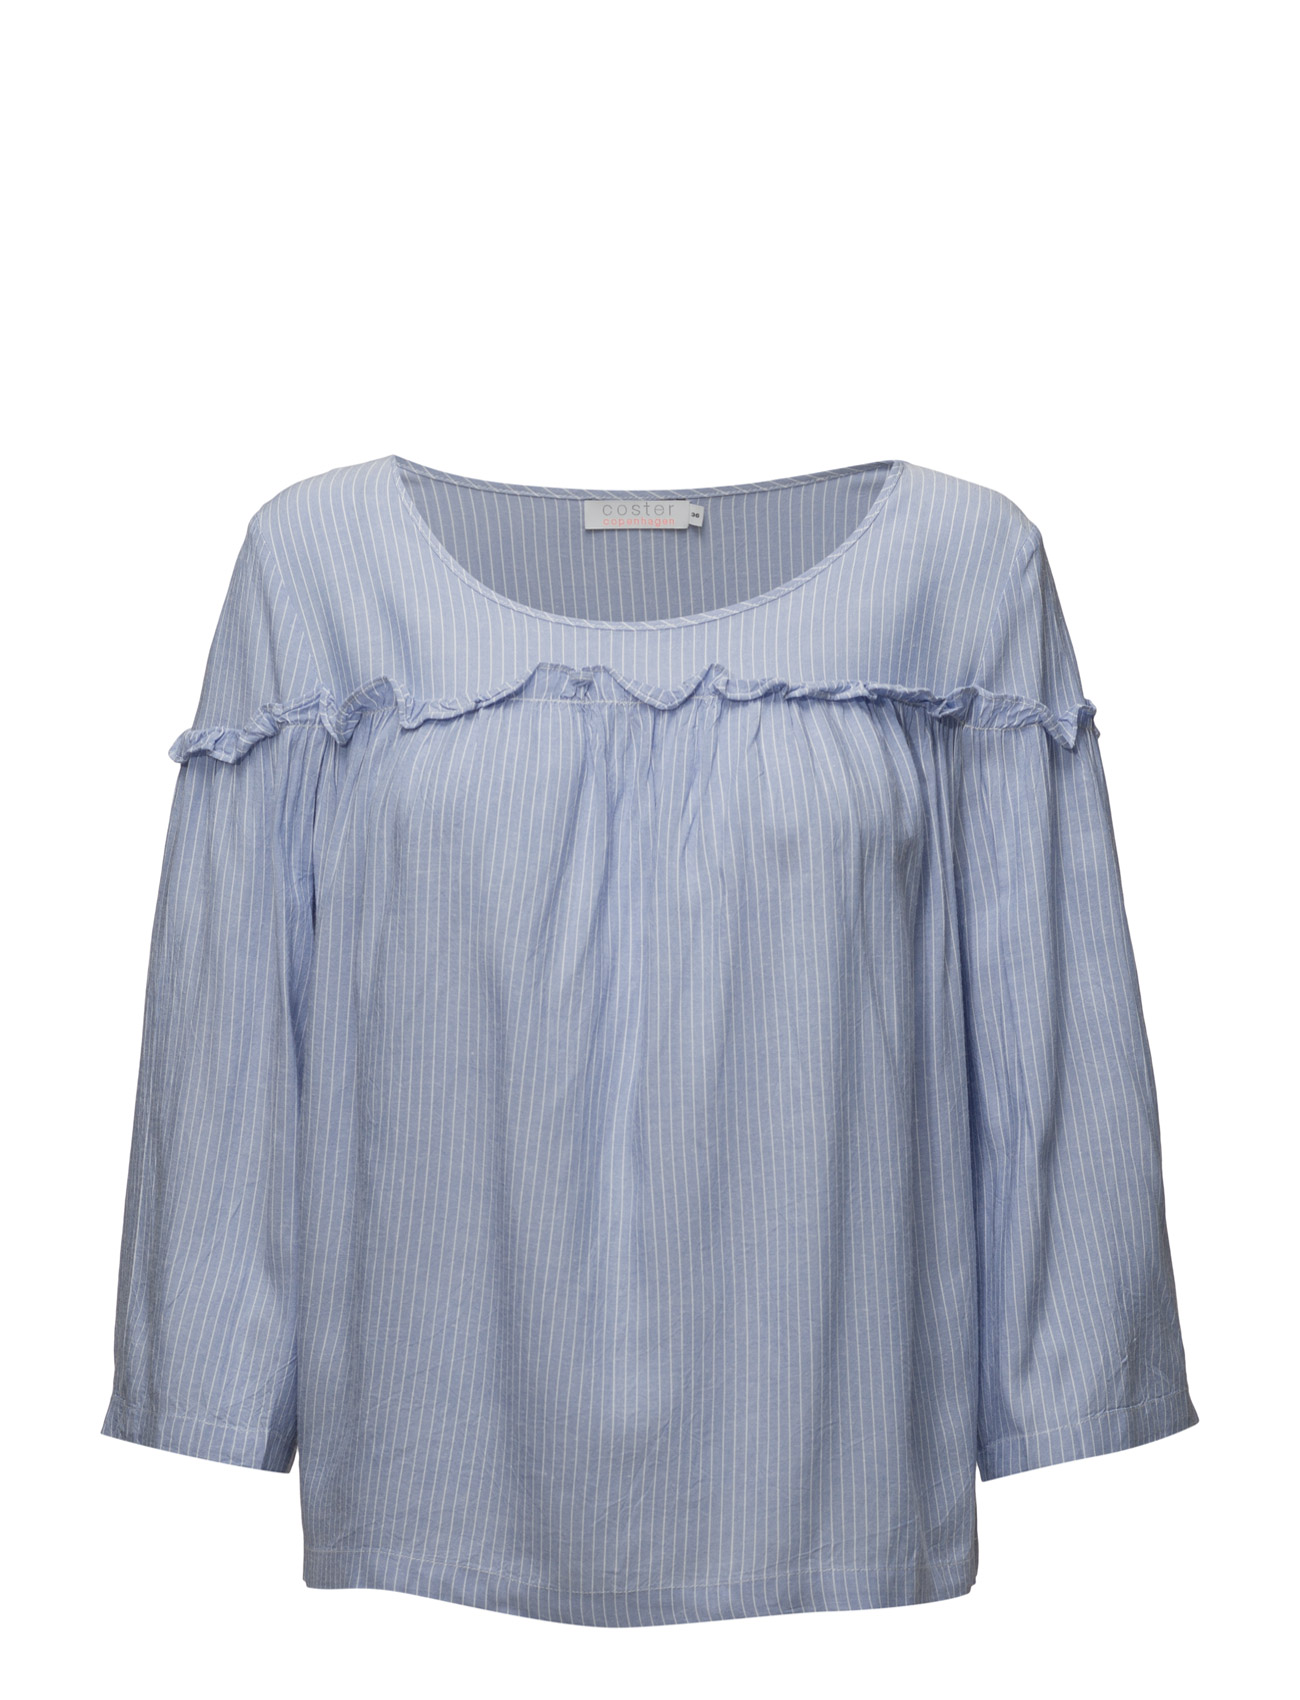 Striped Ruffle Top thumbnail